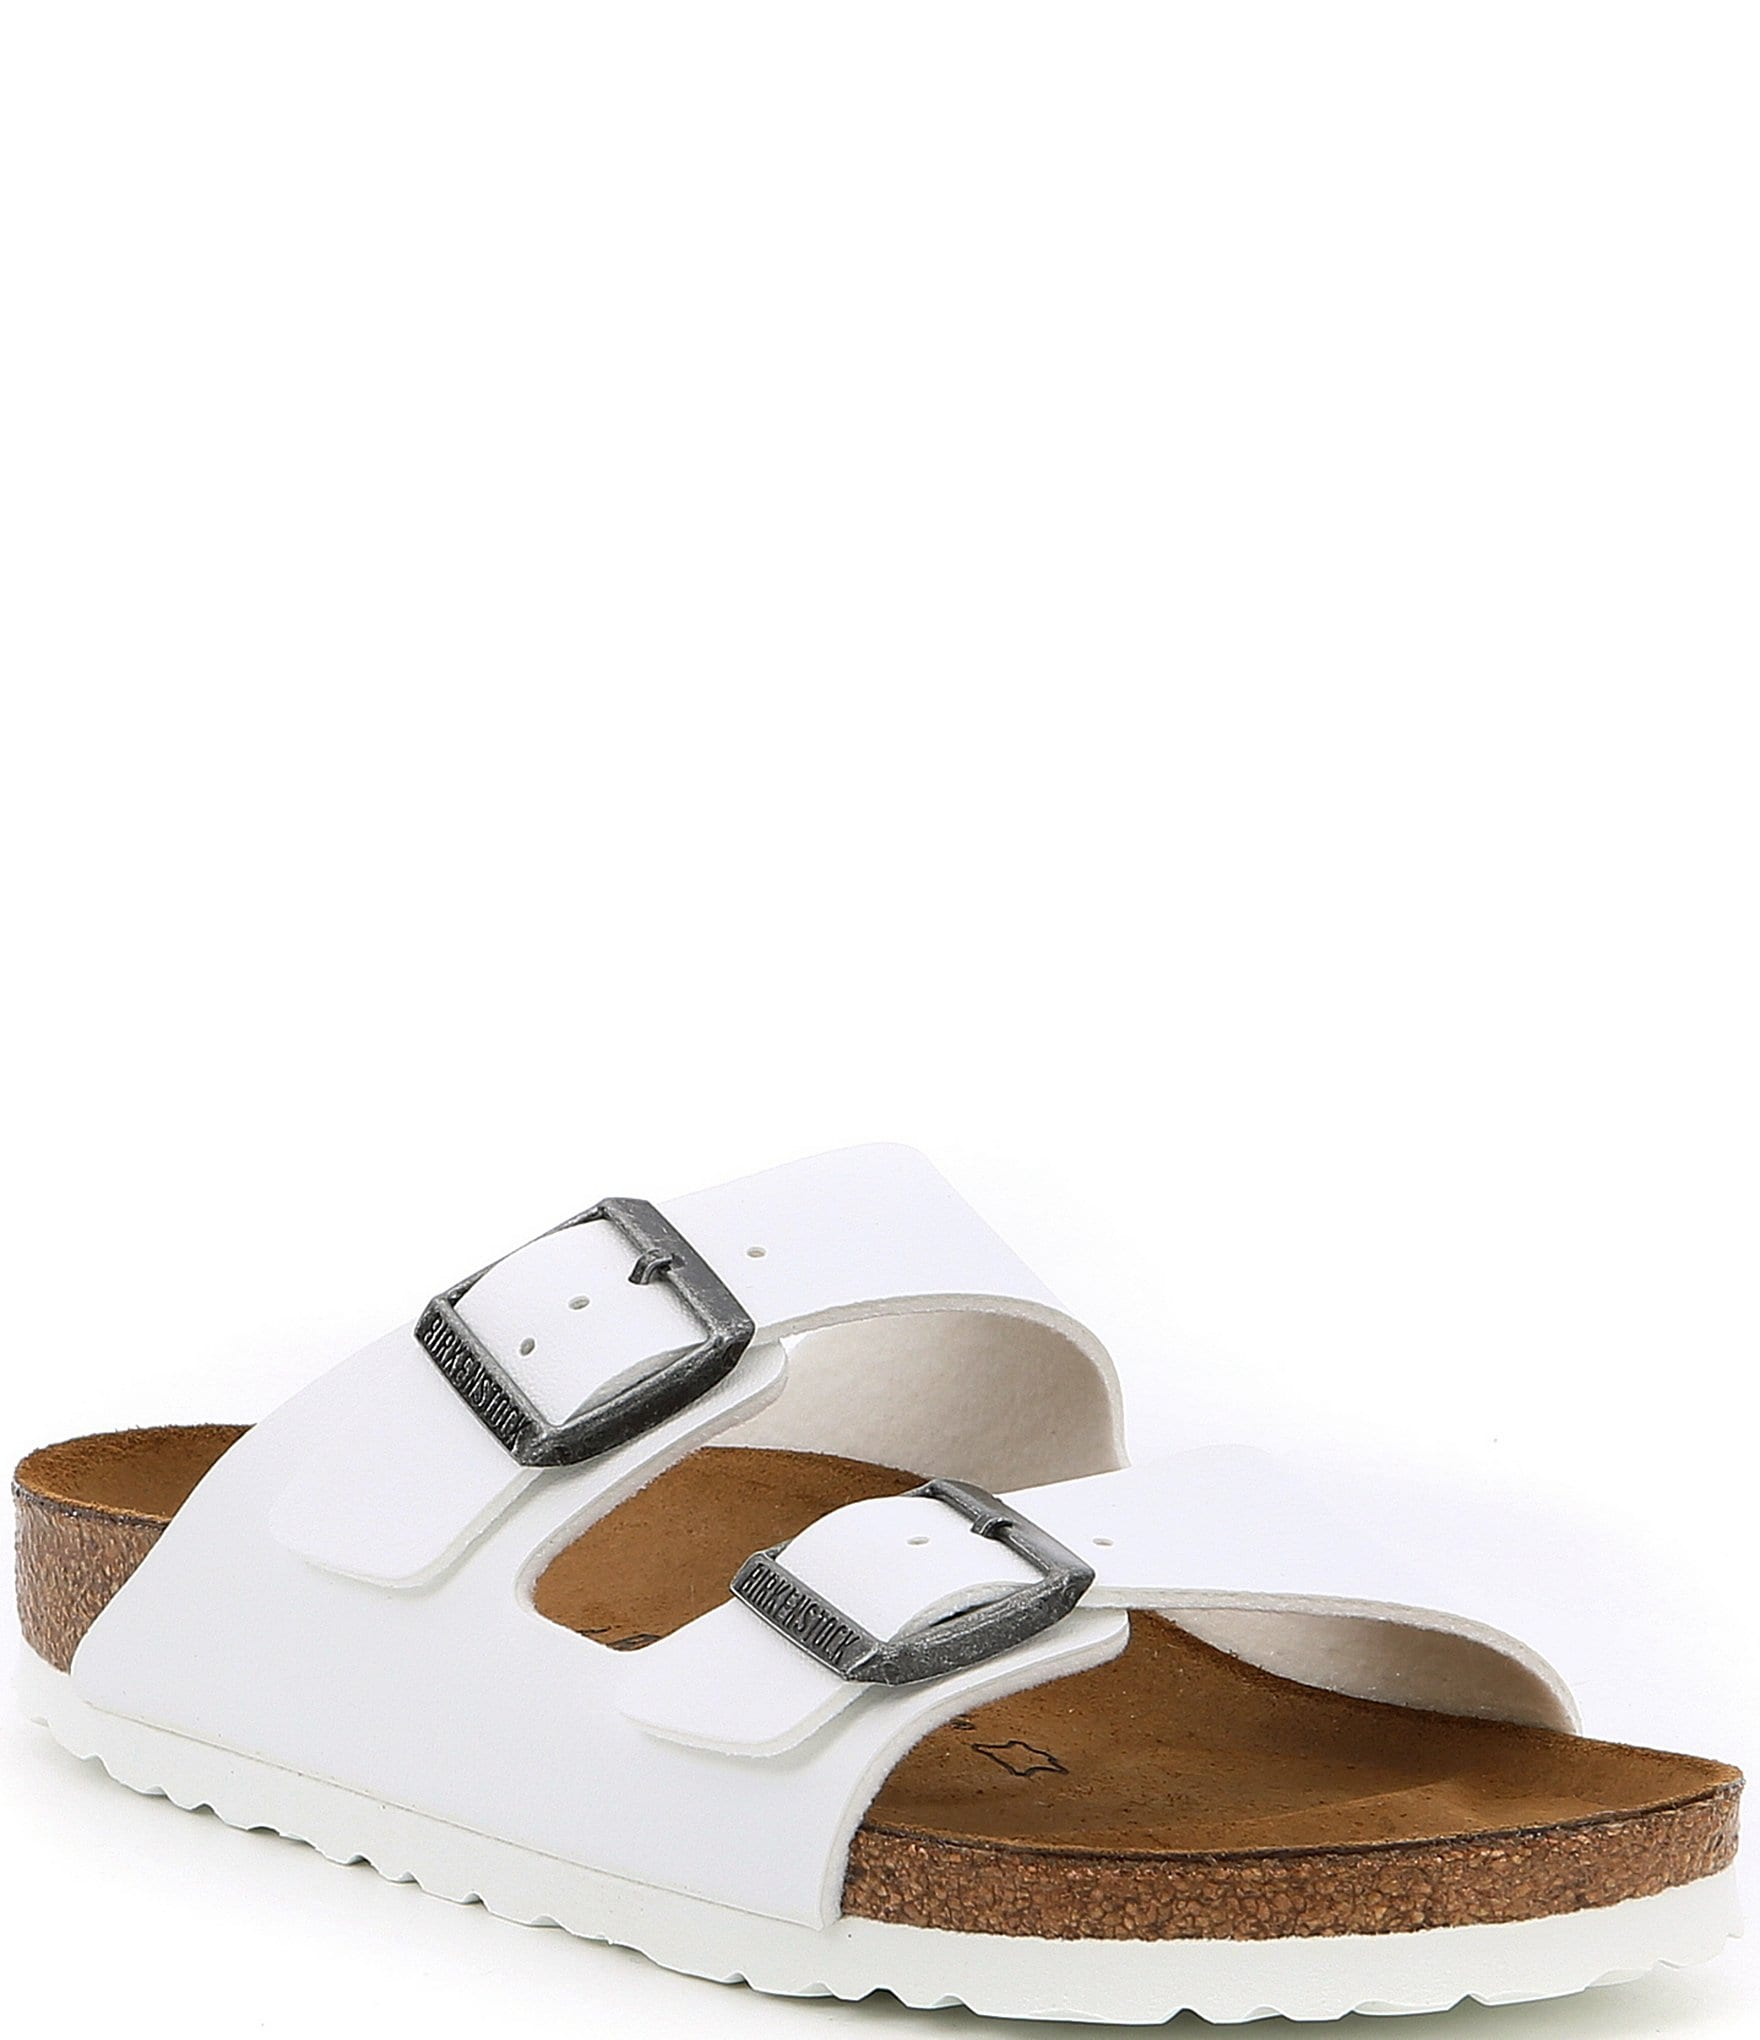 Birkenstock Sandals Women's Birkenstock Women's Birkenstock Arizona Birkenstock Women's Arizona Sandals Arizona Women's Sandals wmNvn80